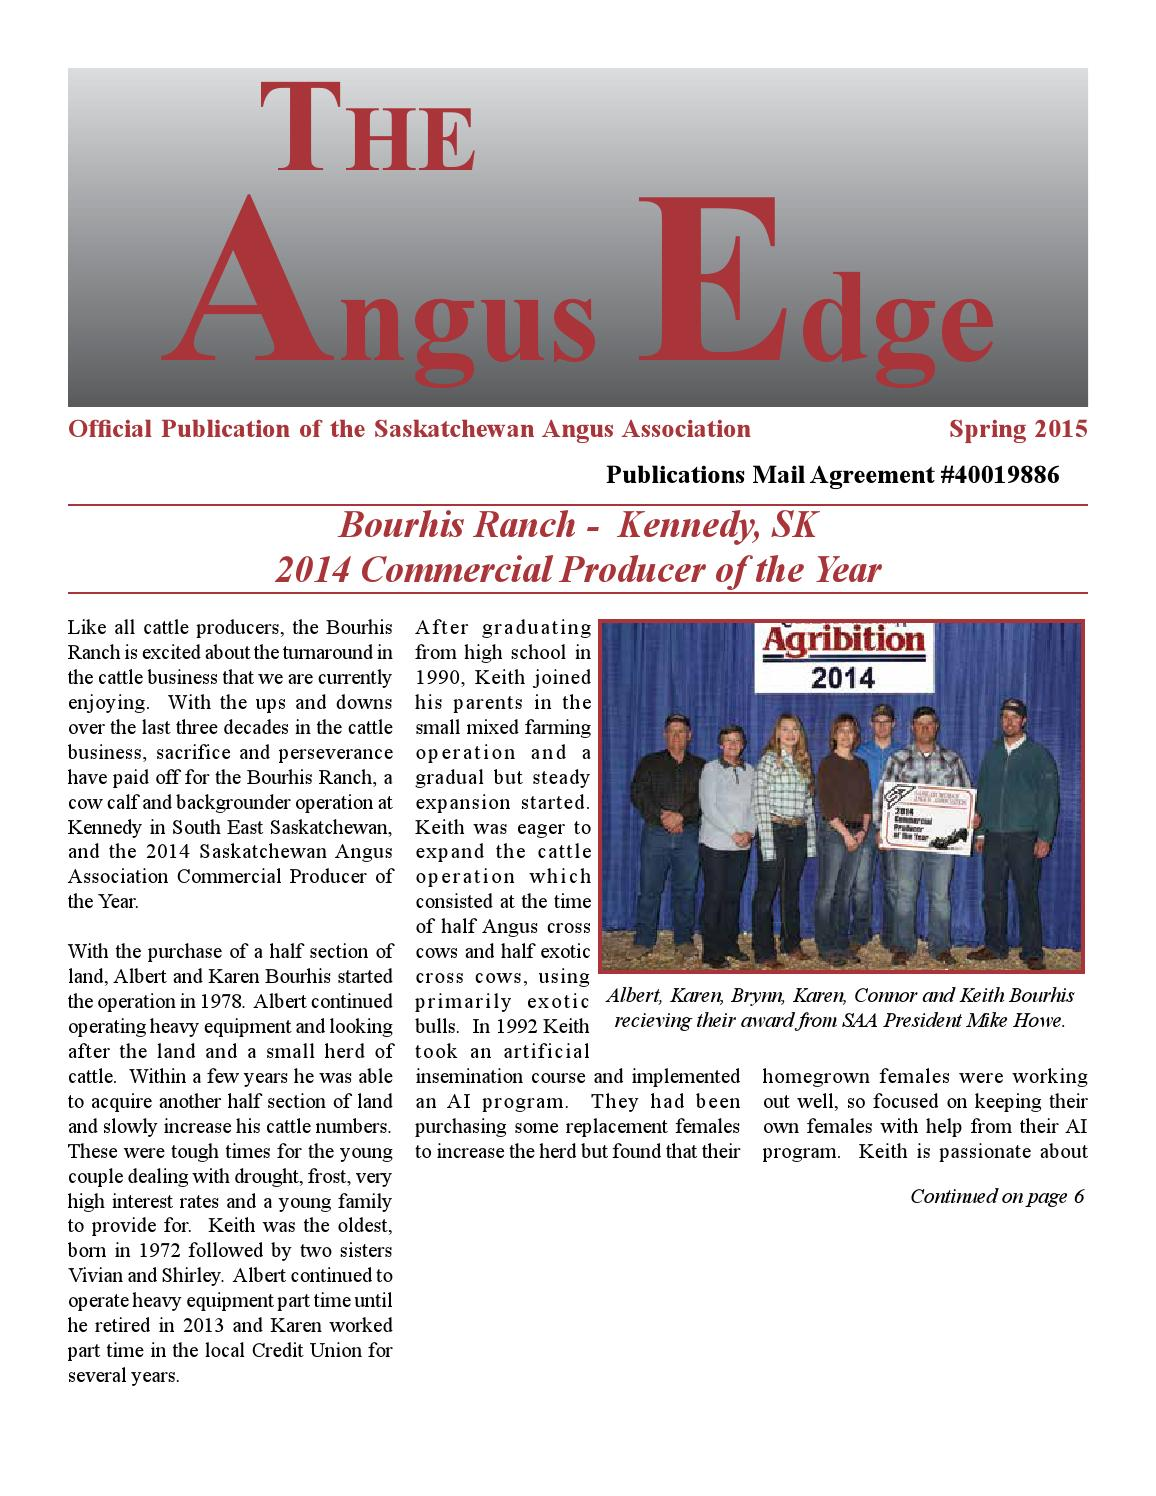 The angus edge spring 2015 by belinda wagner issuu aiddatafo Choice Image